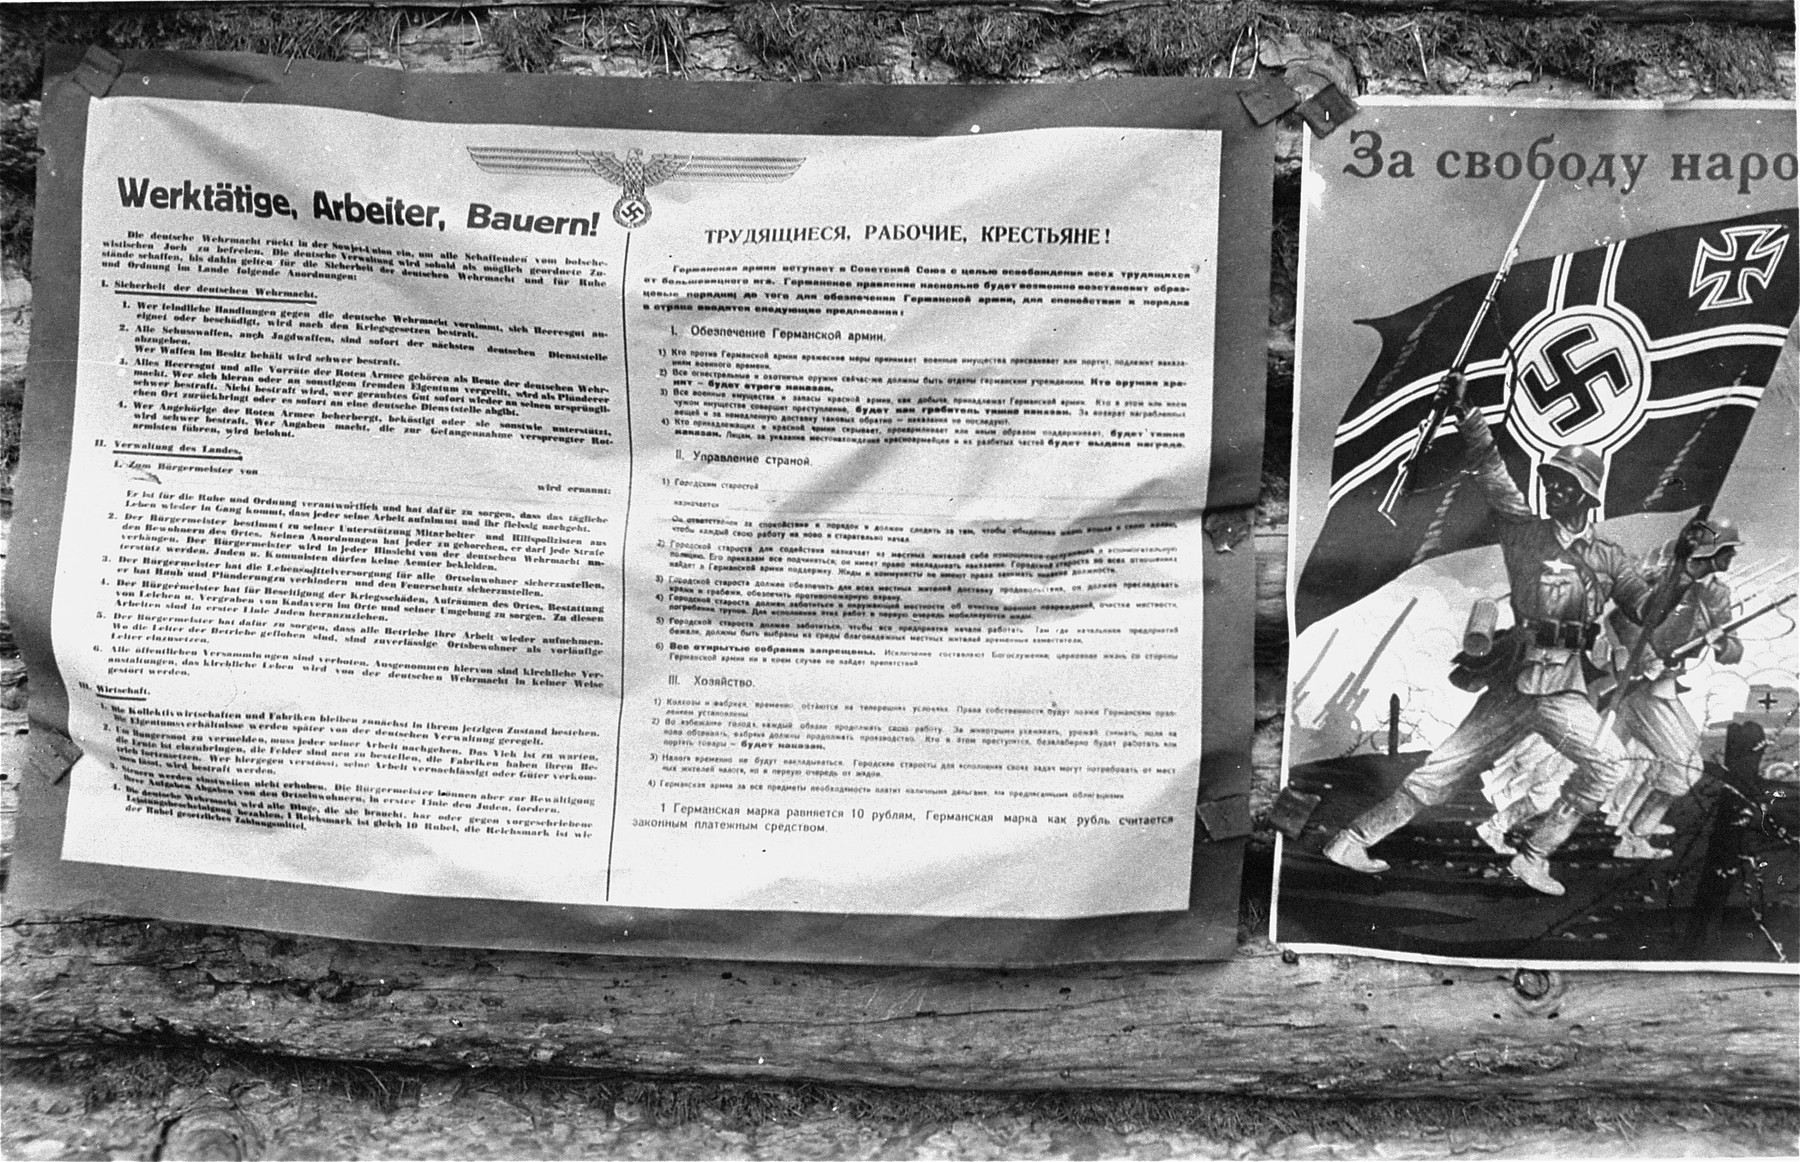 A bilingual notice posted by German authorities shortly after the start of the German occupation.  It outlines measures the army will take for the security of German troops, as well as German plans for the administration of conquered territory.  The propaganda poster on the right shows victory German troops freeing the USSR.